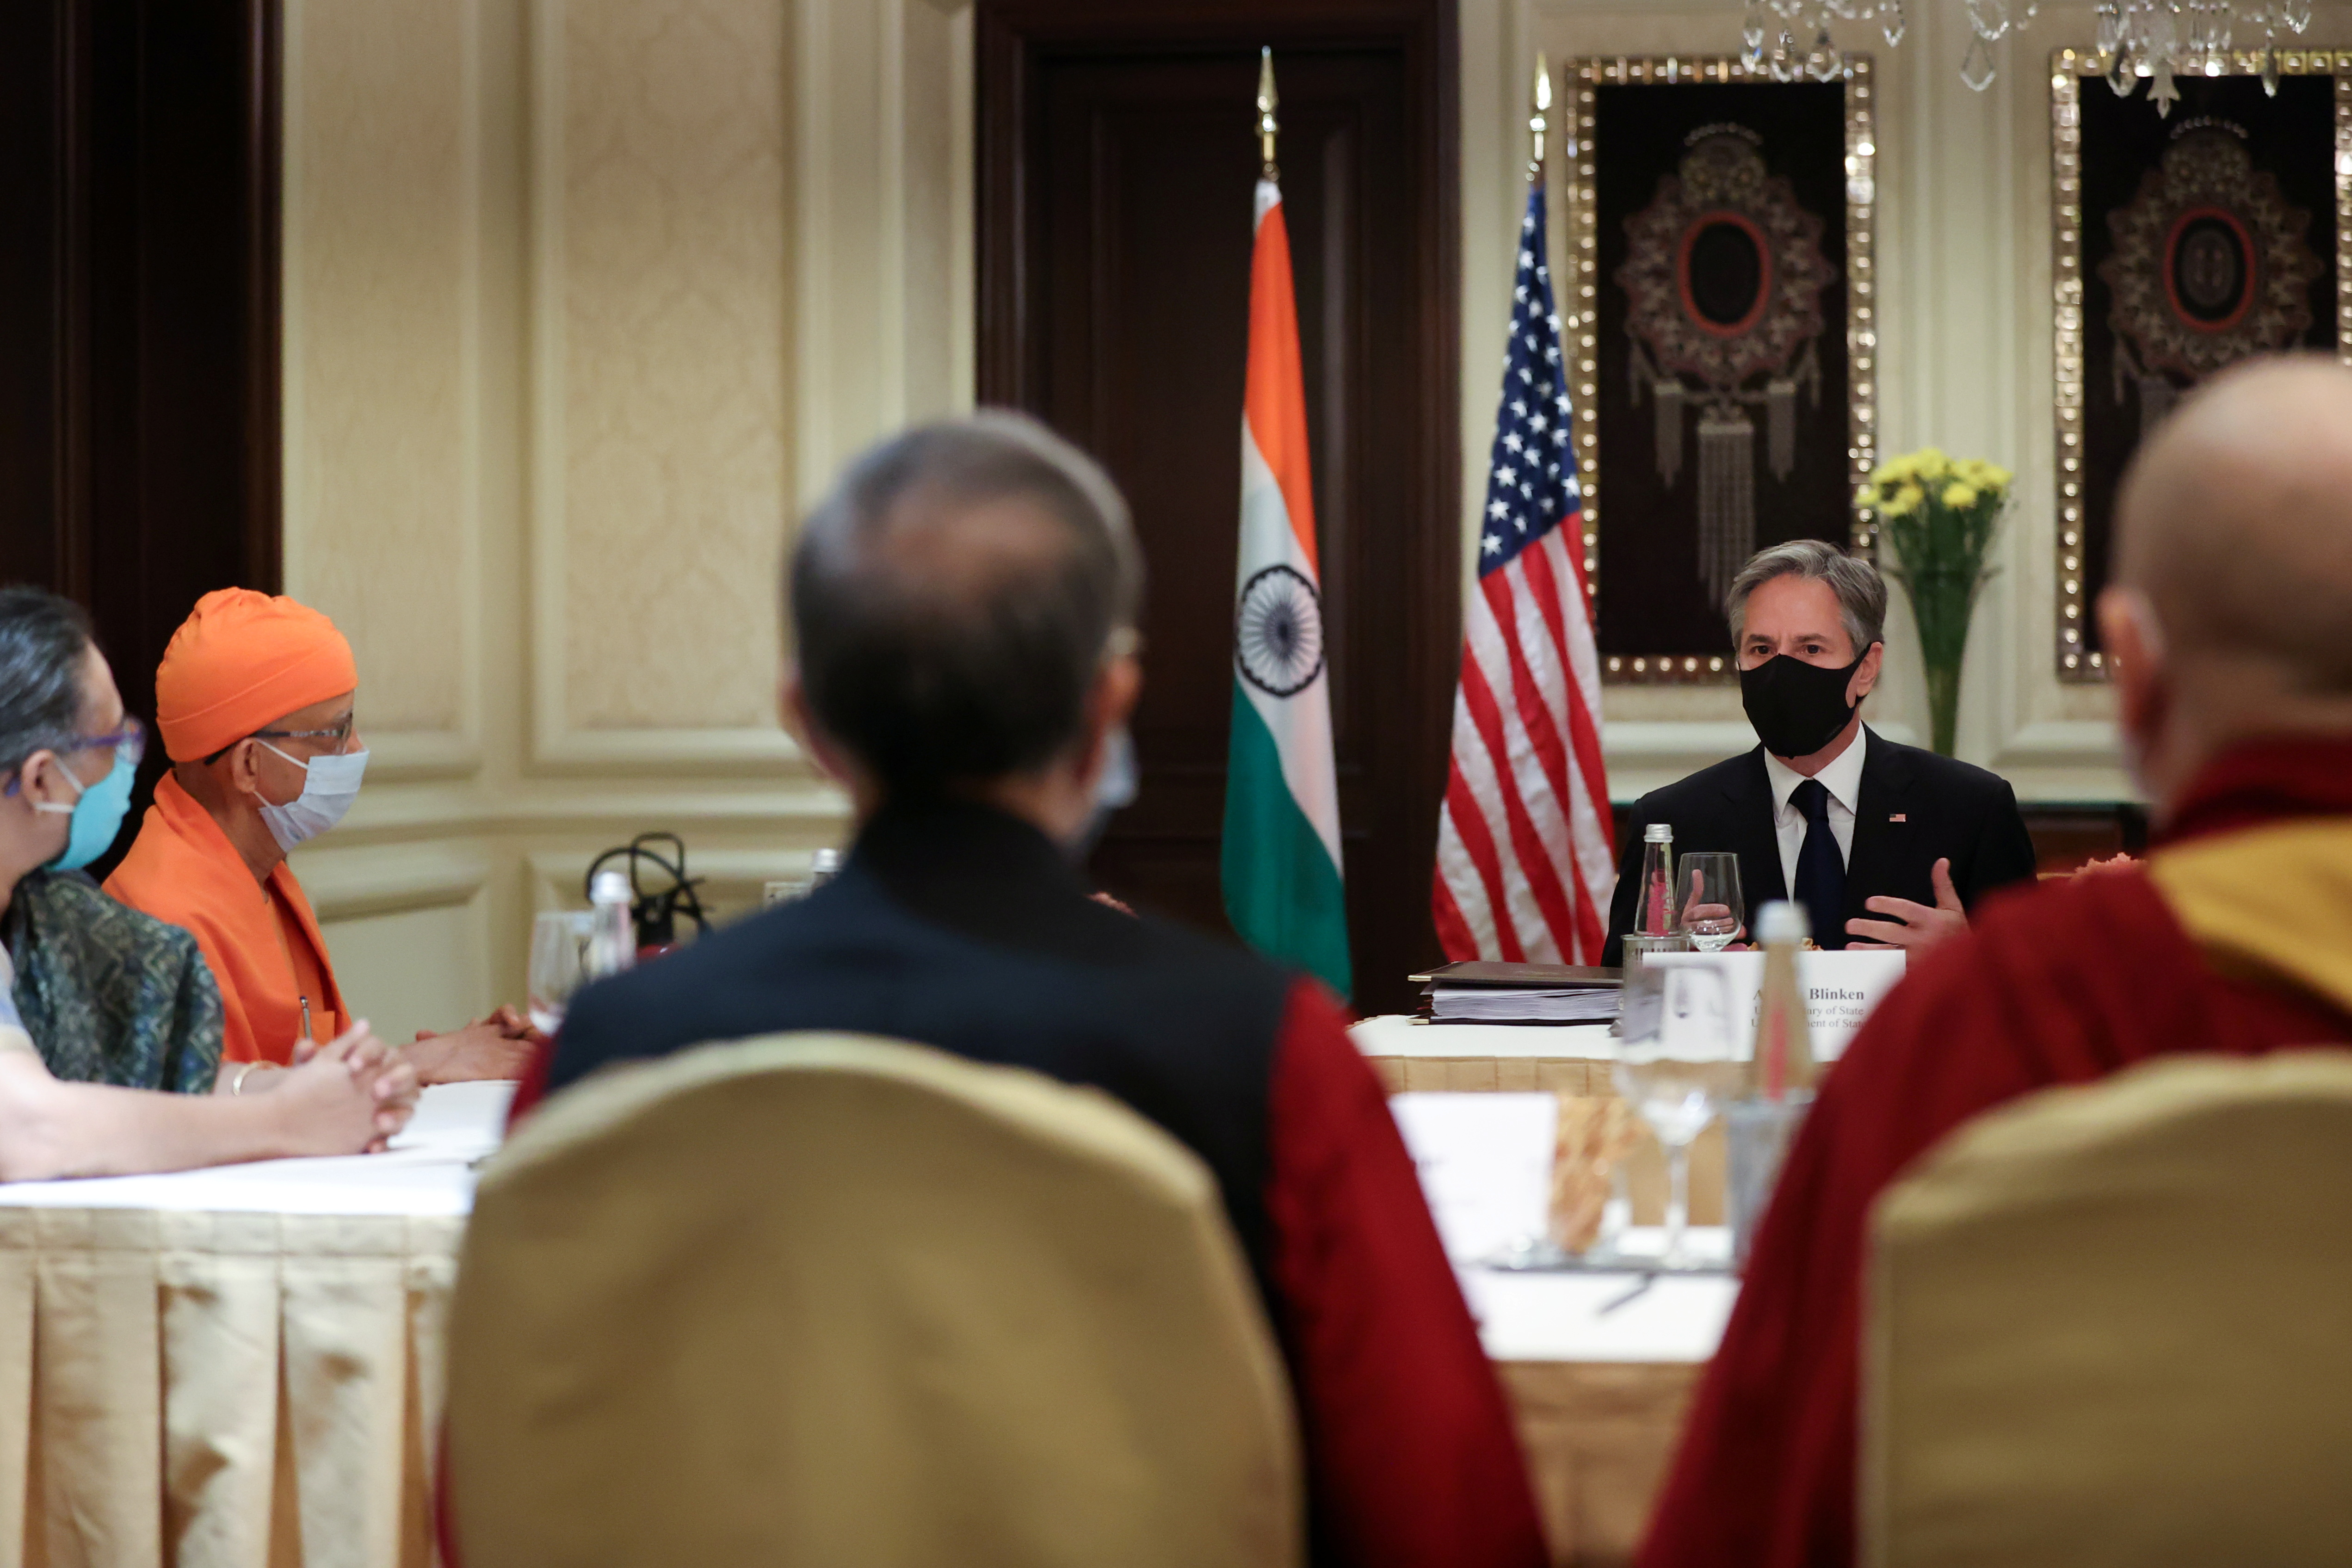 U.S. Secretary of State Antony Blinken delivers remarks to civil society organization representatives in a meeting room at the Leela Palace Hotel in New Delhi, India, July 28, 2021.REUTERS/Jonathan Ernst